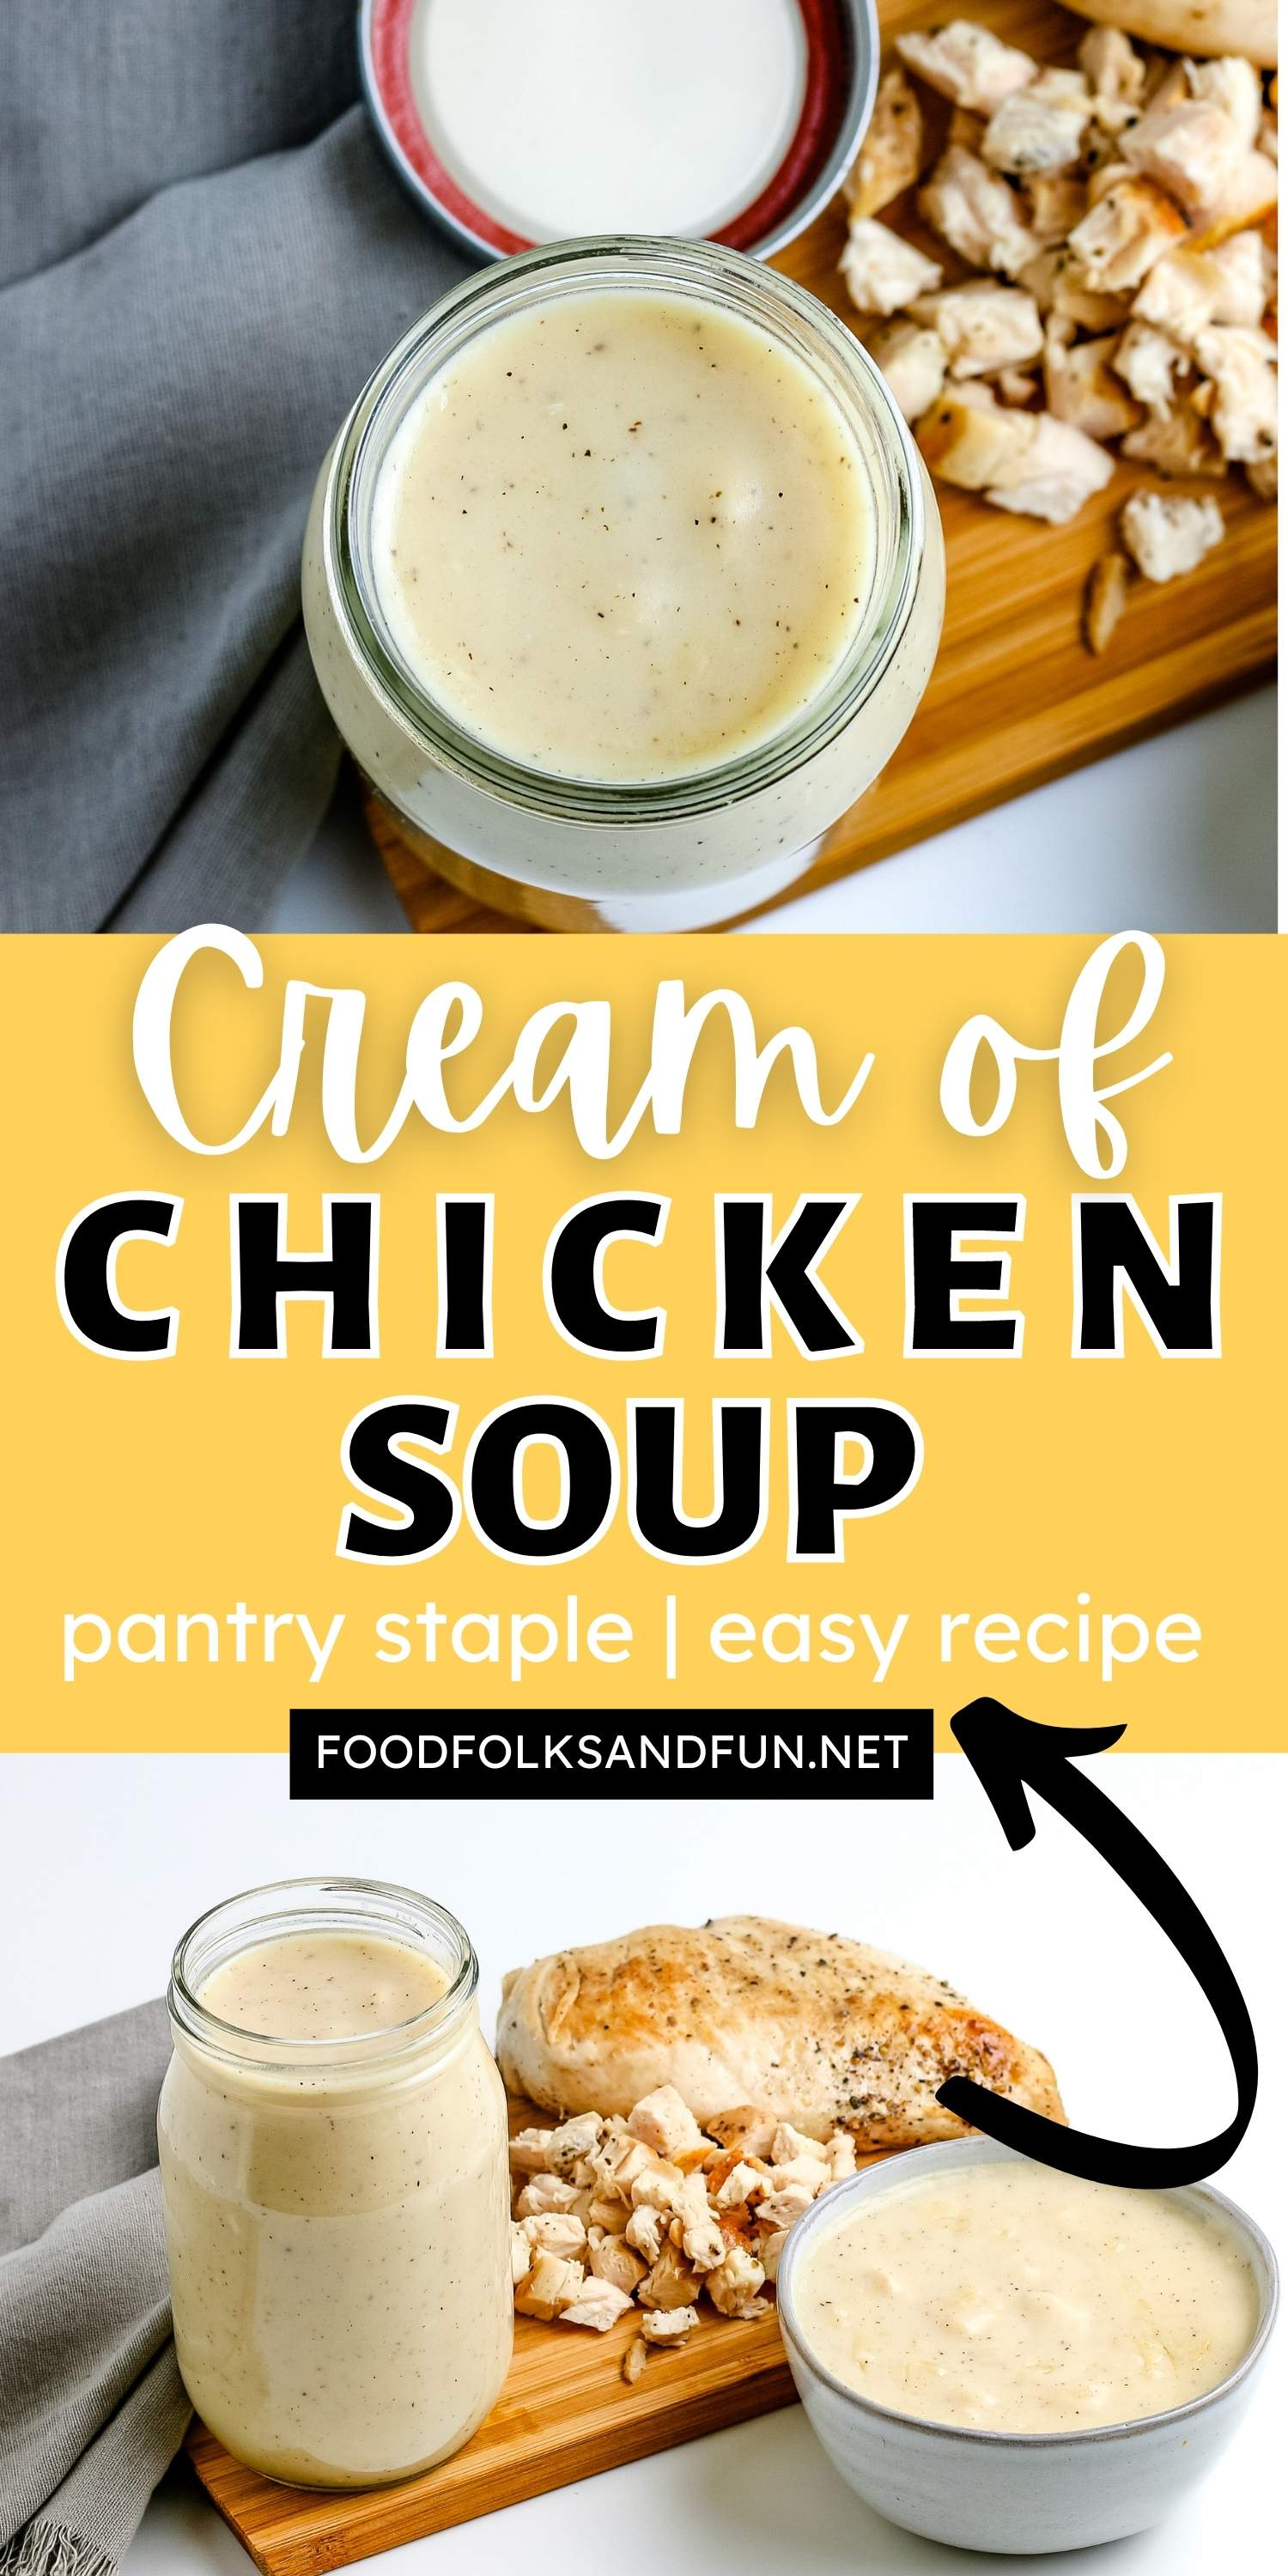 This Homemade Cream of Chicken Soup recipe is a delicious substitute for the pantry staple, condensed soup. It's great for adding to casseroles and soups. via @foodfolksandfun